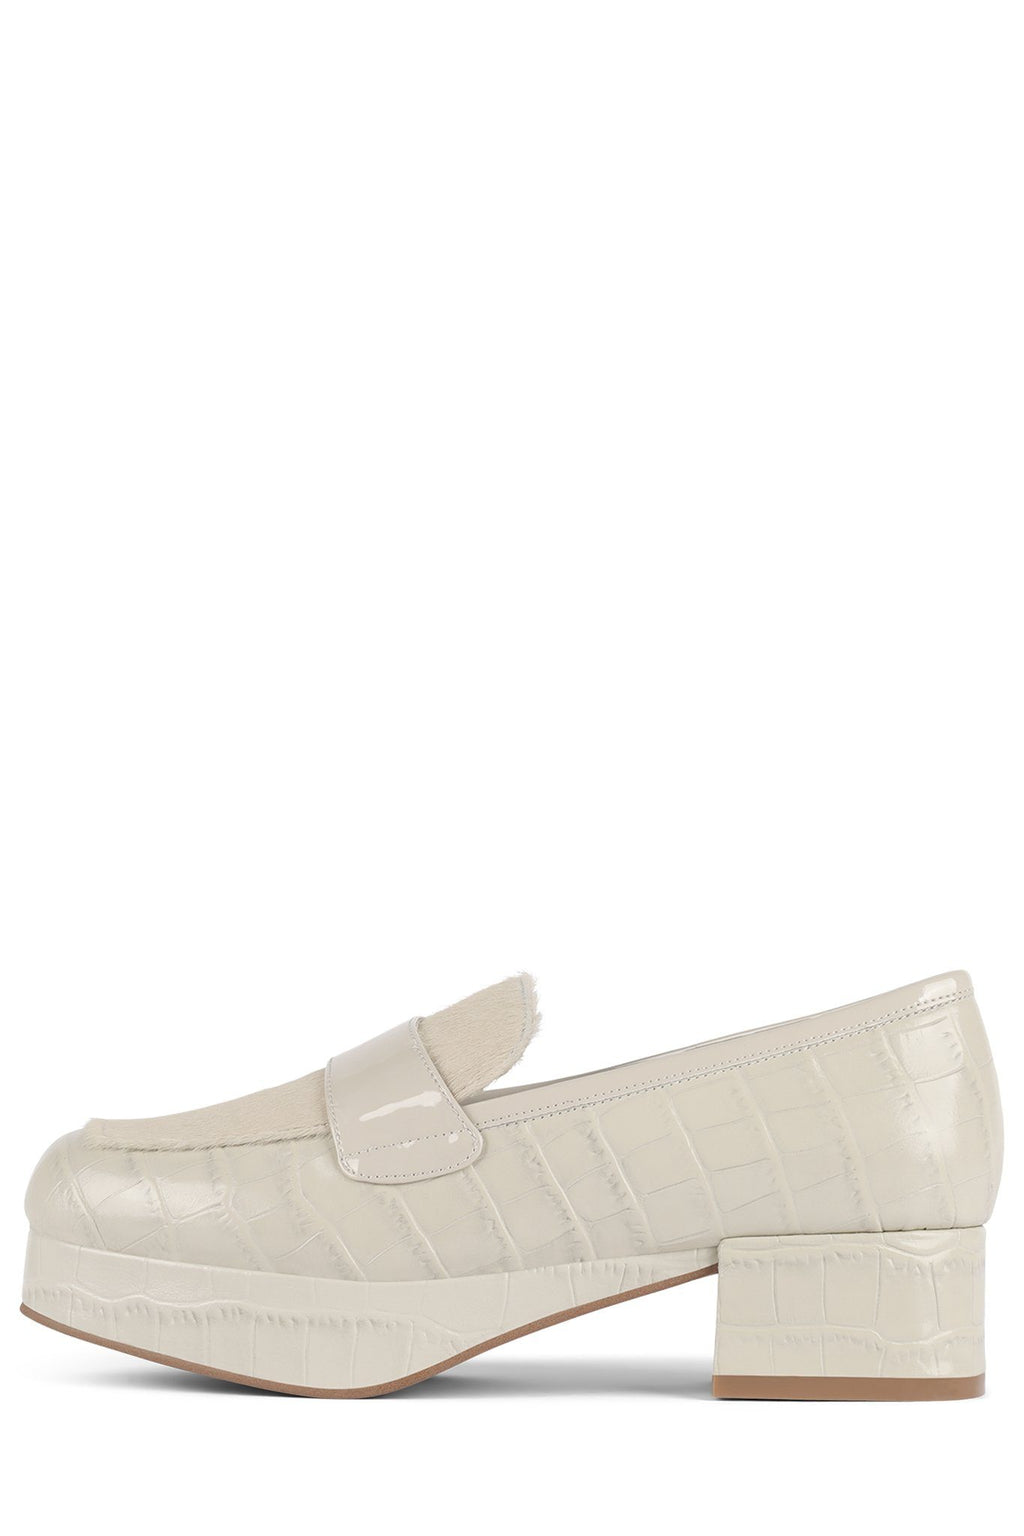 STUDENT Loafer DV Ivory Exotic Combo 6